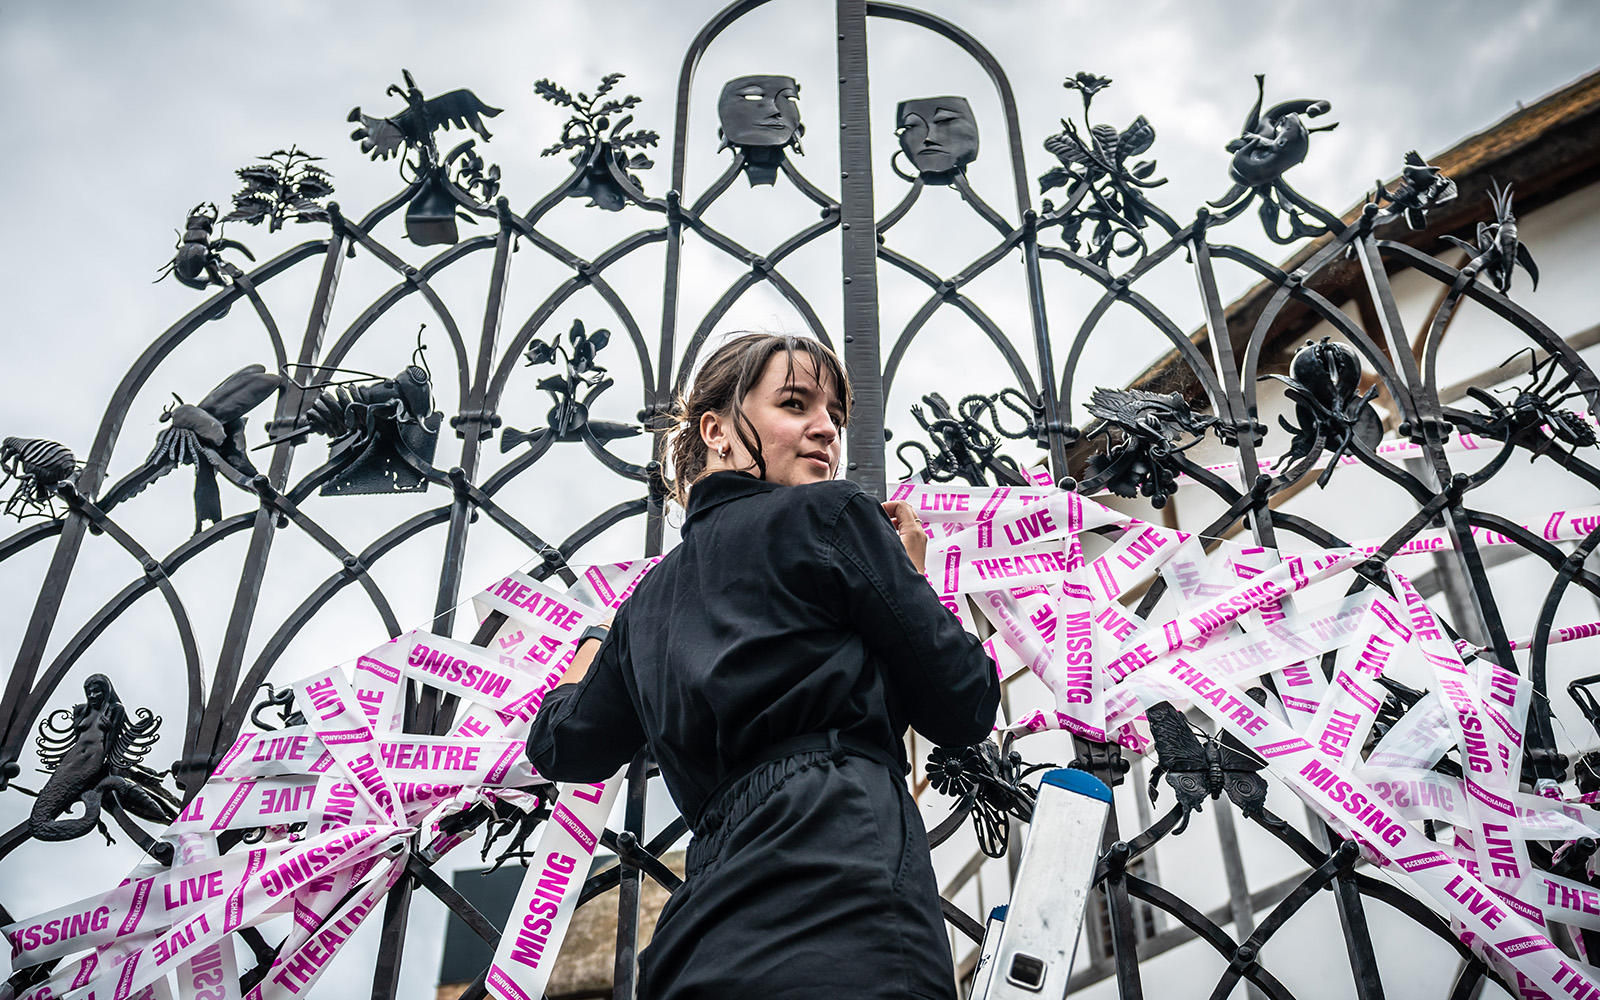 A shot looking up at a woman standing before a set of iron gates, placing white and pink tape.